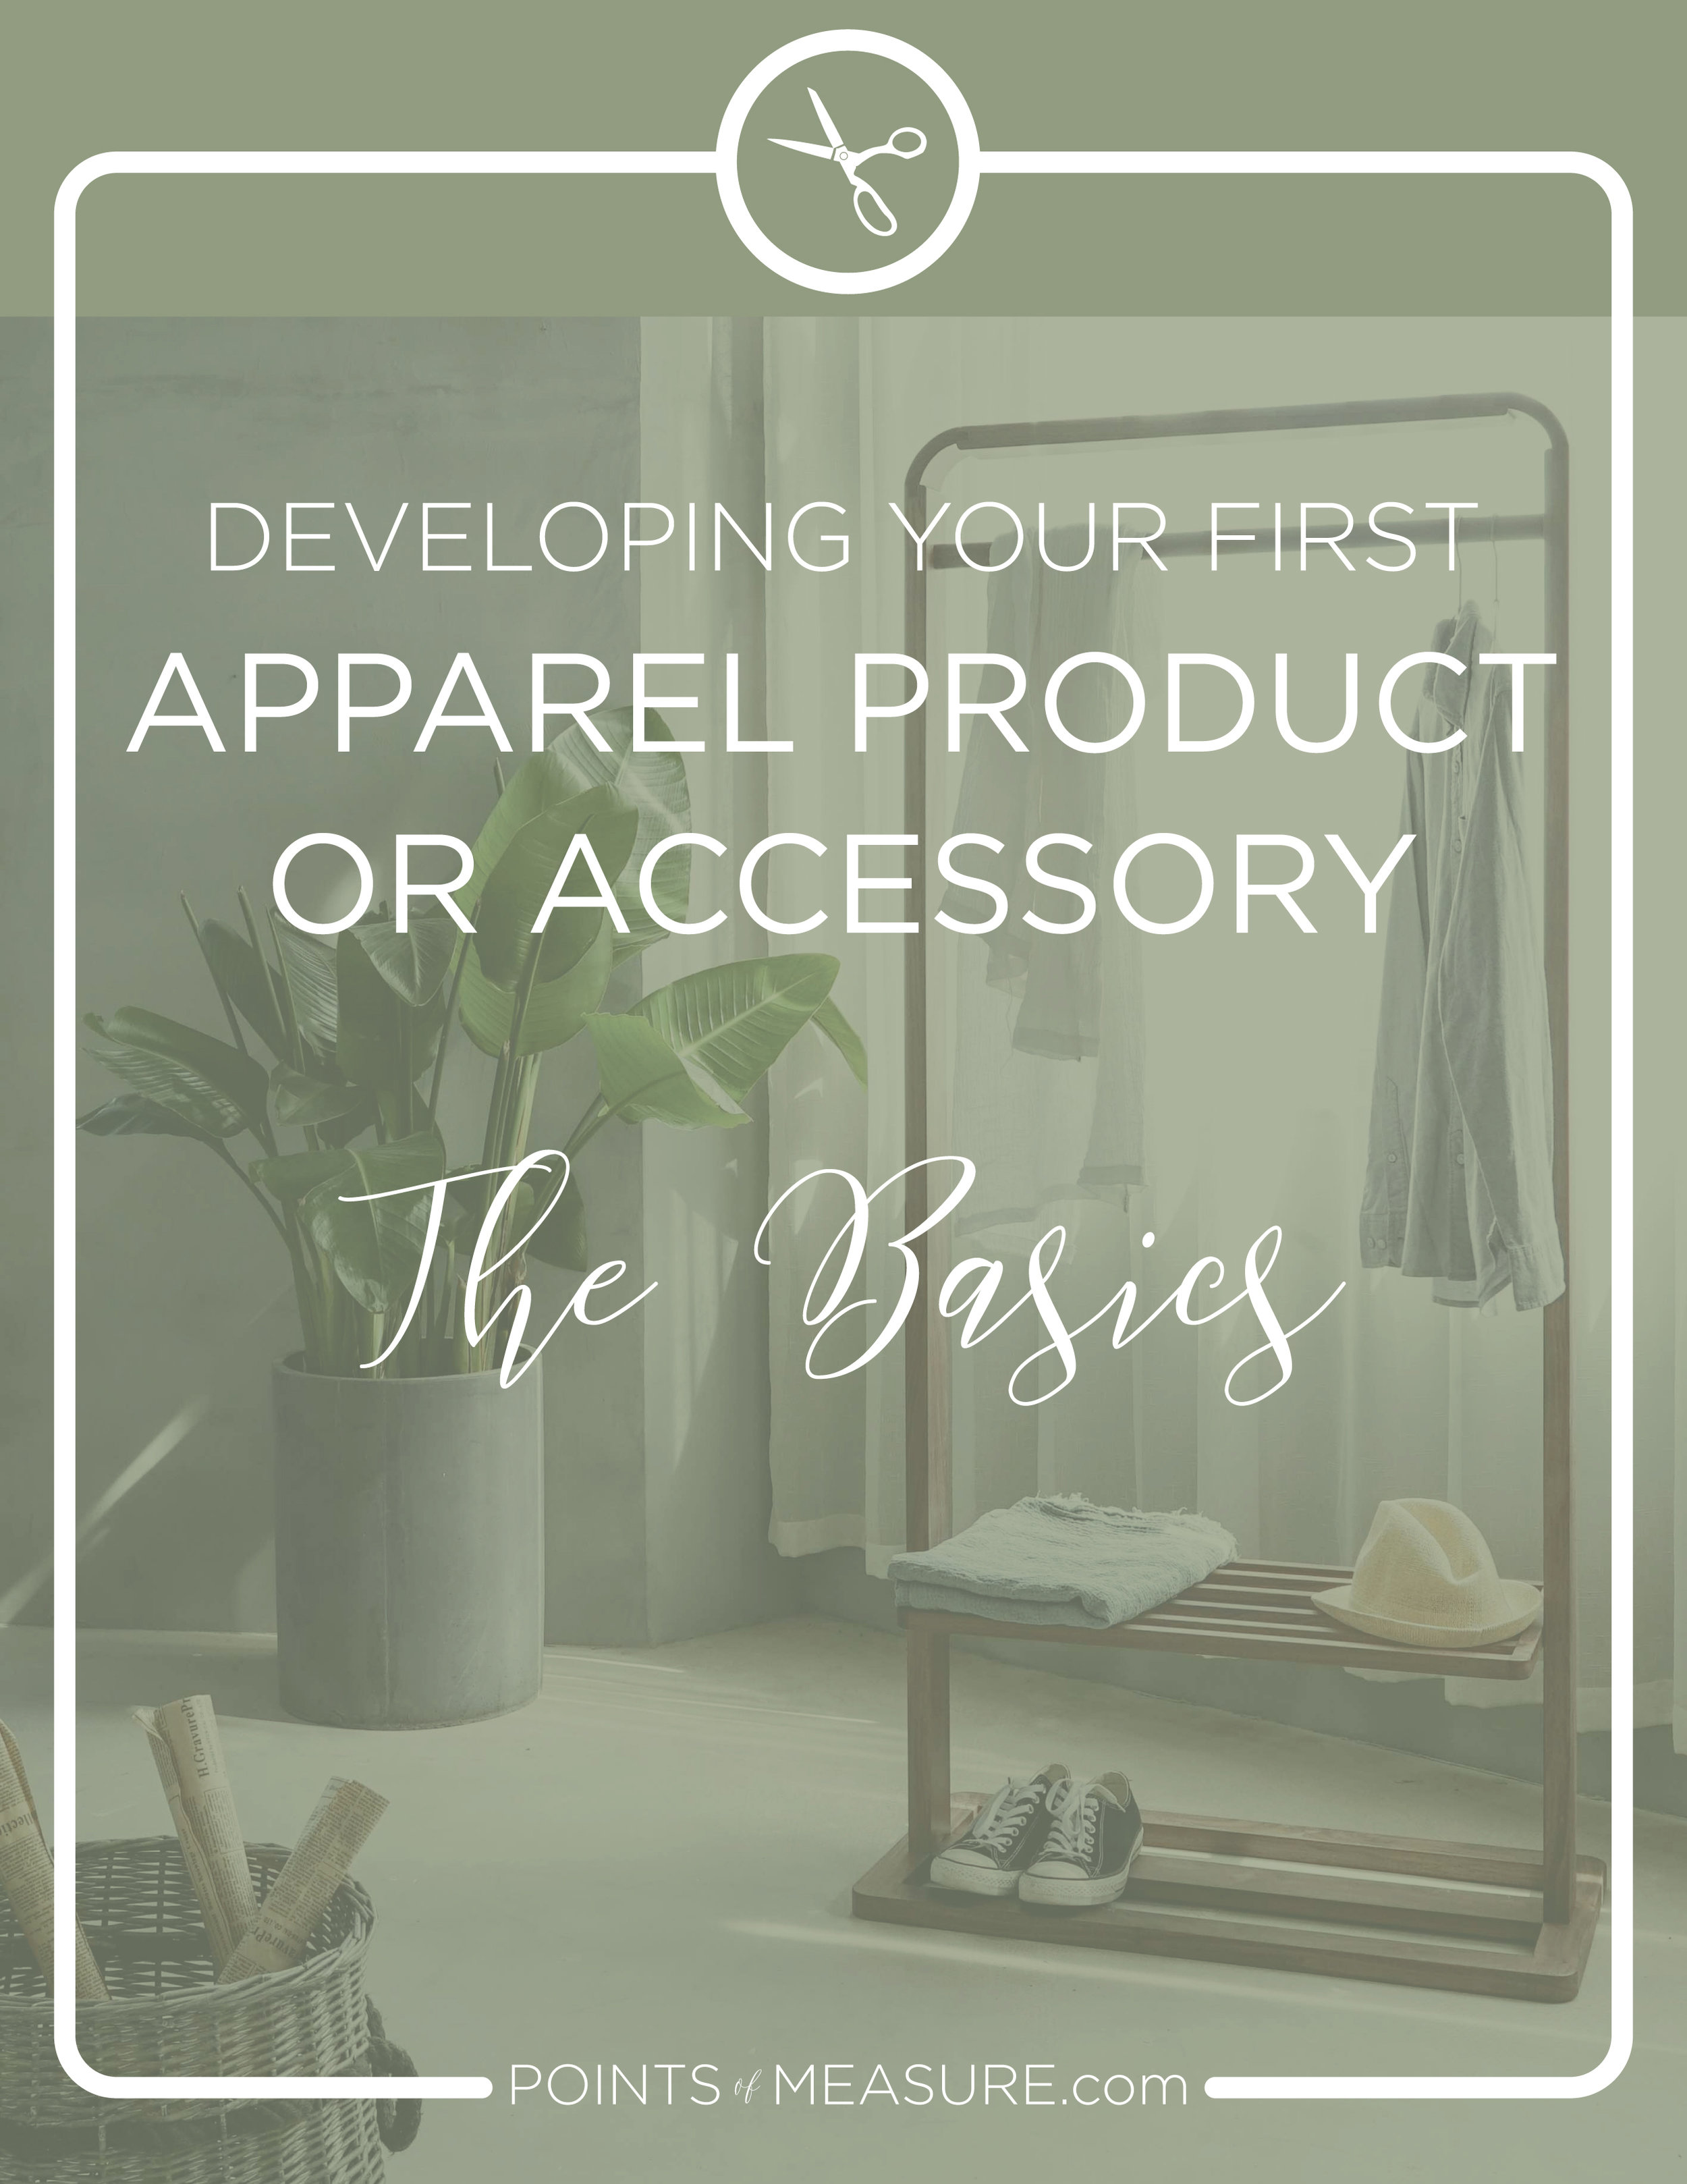 developing-your-first-apparel-product-or-accessory-the-basics-points-of-measure.jpg